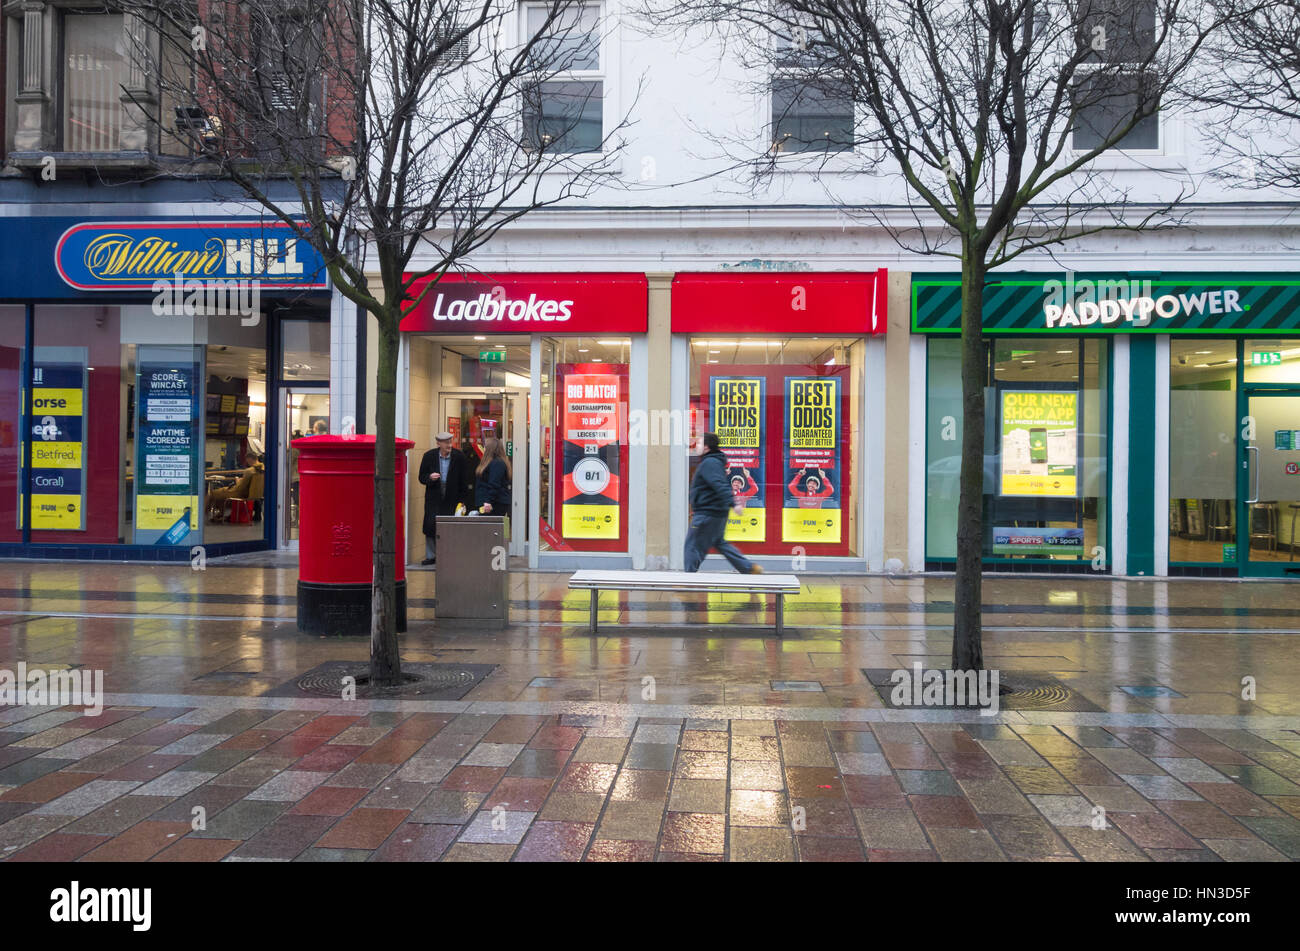 Betting shops in the uk nyt sports betting